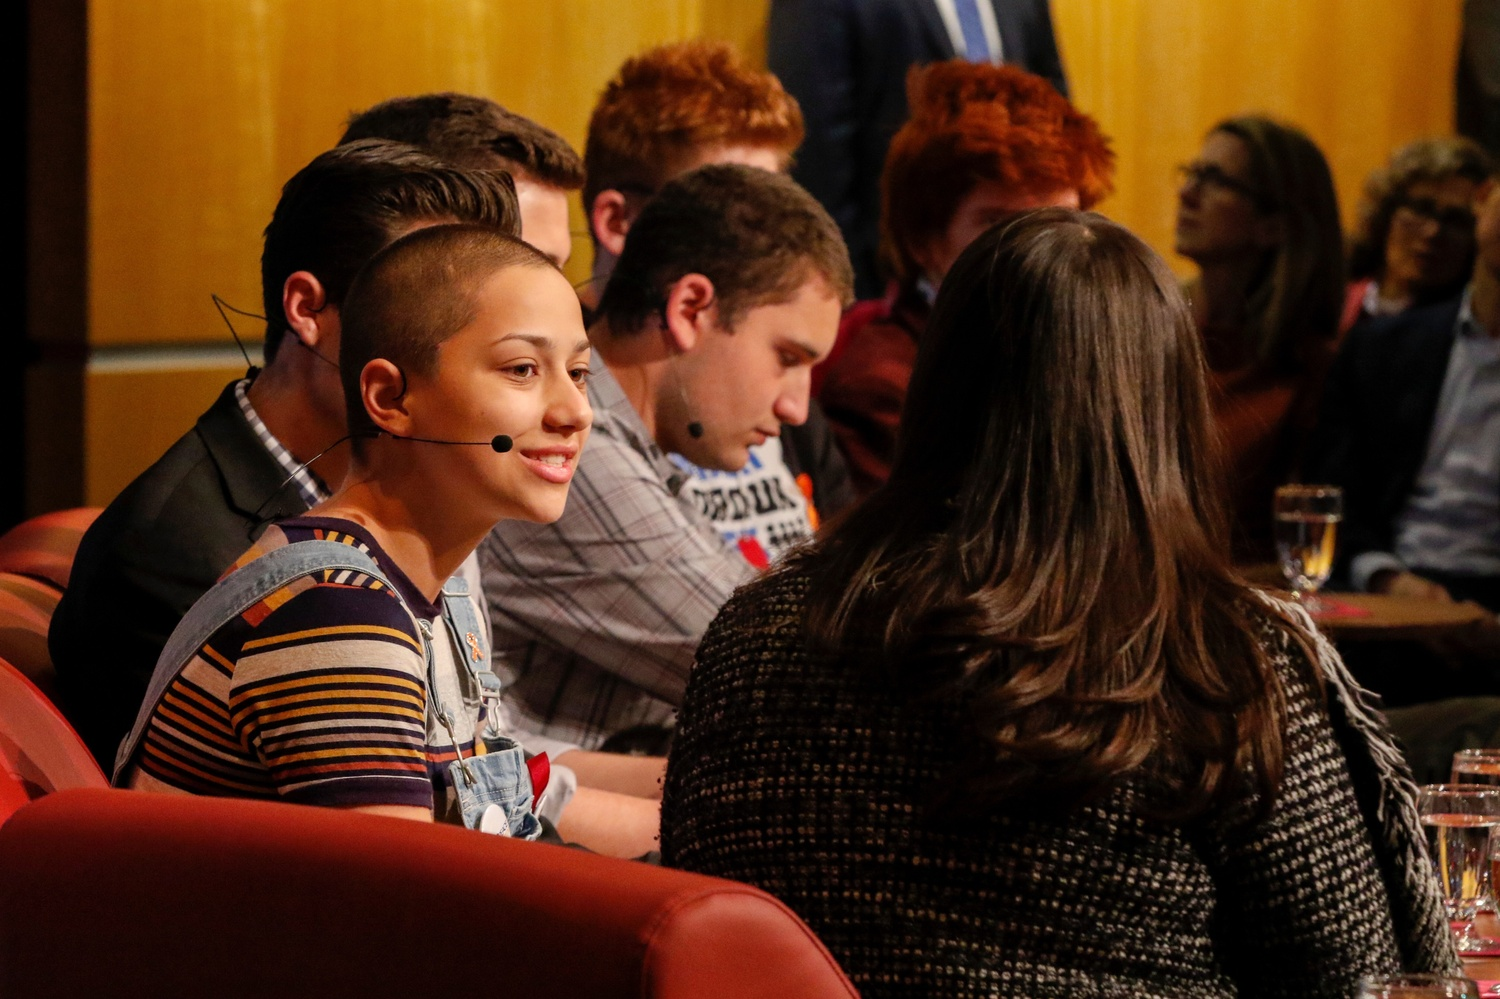 Marjory Stoneman Douglas High School senior Emma González and five of her classmates spoke at the JFK Jr. Forum Tuesday about their organization of the #NeverAgain movement, a push to end gun violence across the United States.